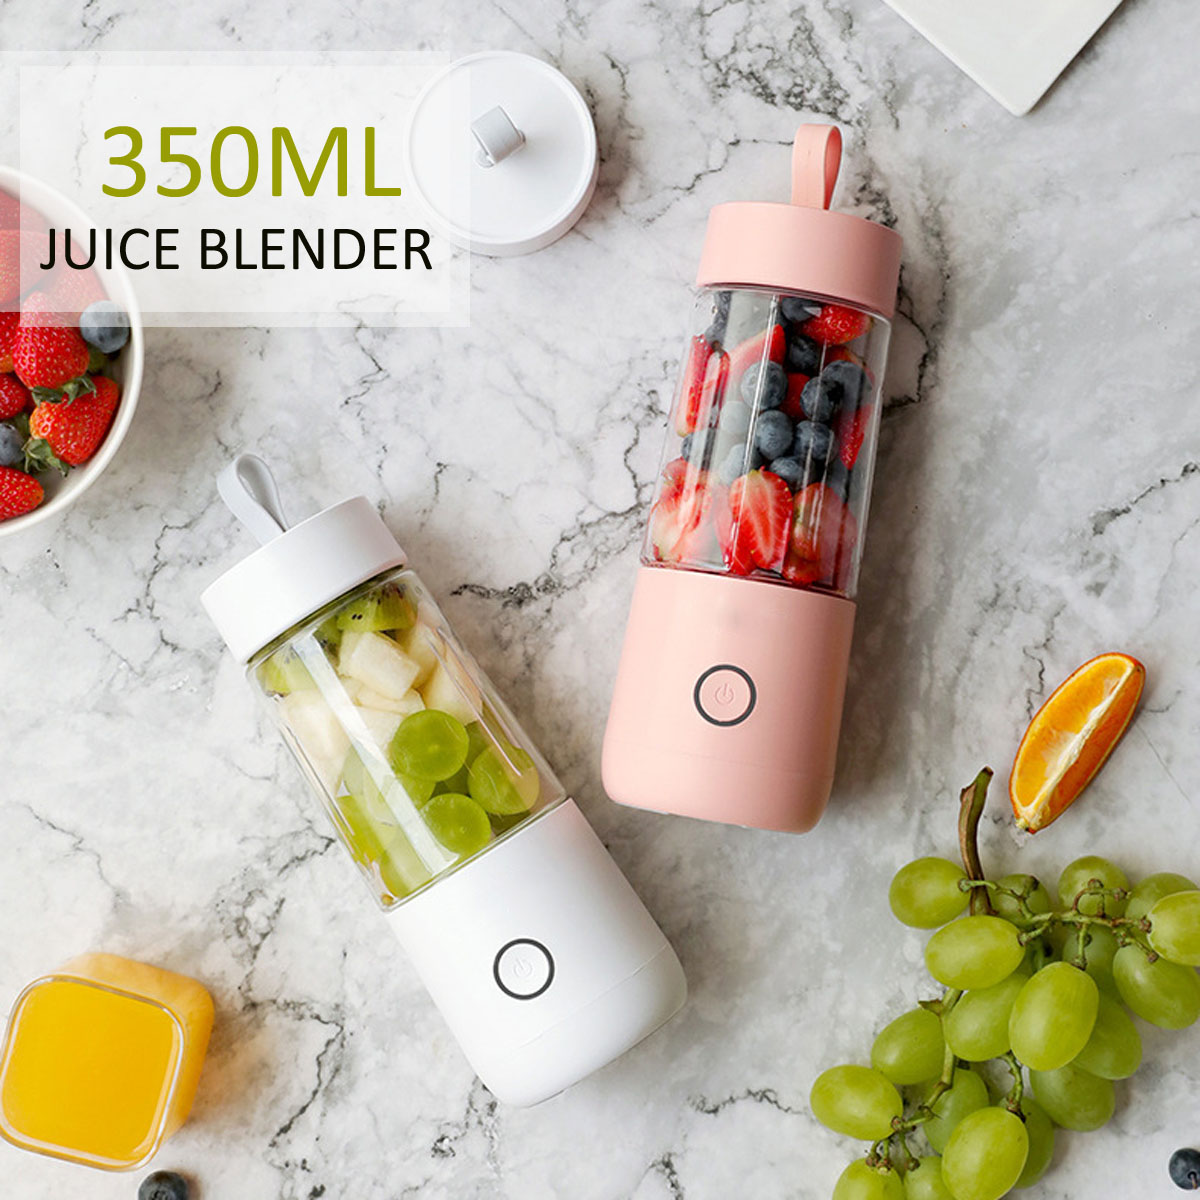 Warmtoo 380ml Portable Juicer Electric USB Rechargeable Smoothie Blender Machine Mixer Mini Juice Cup Maker Fast Blenders